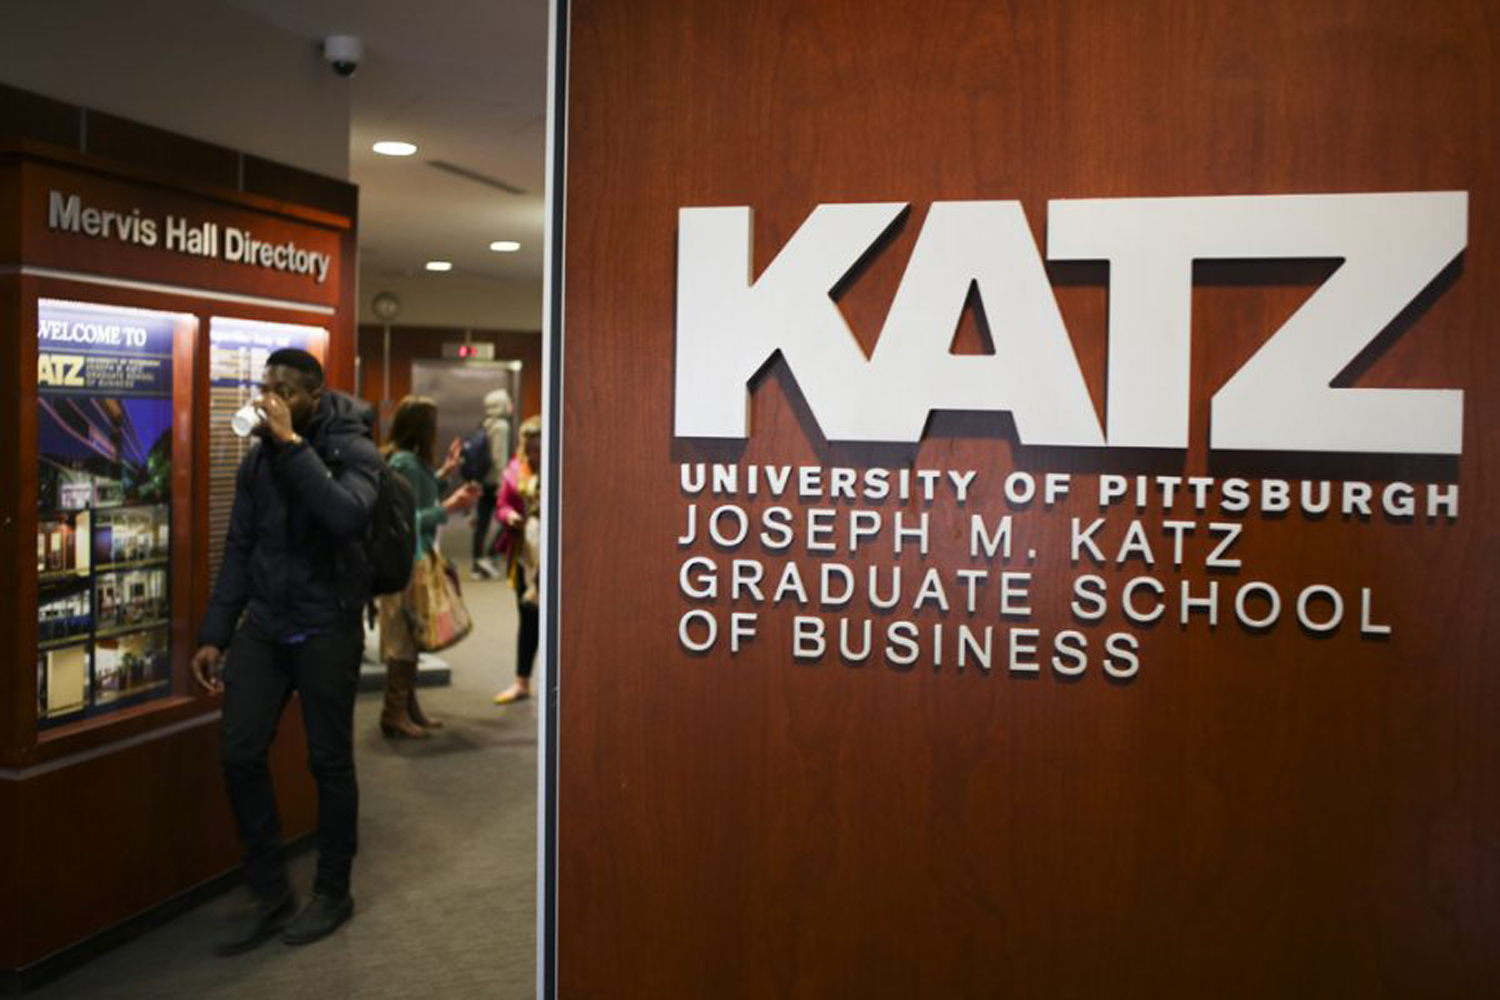 Neil Fogarty, a 61-year-old lecturer of the College of Business Administration and the Katz Graduate School of Business, filed a suit against the University in early February alleging Pitt violated the Age Discrimination in Employment Act and the Pennsylvania Human Relations Act.